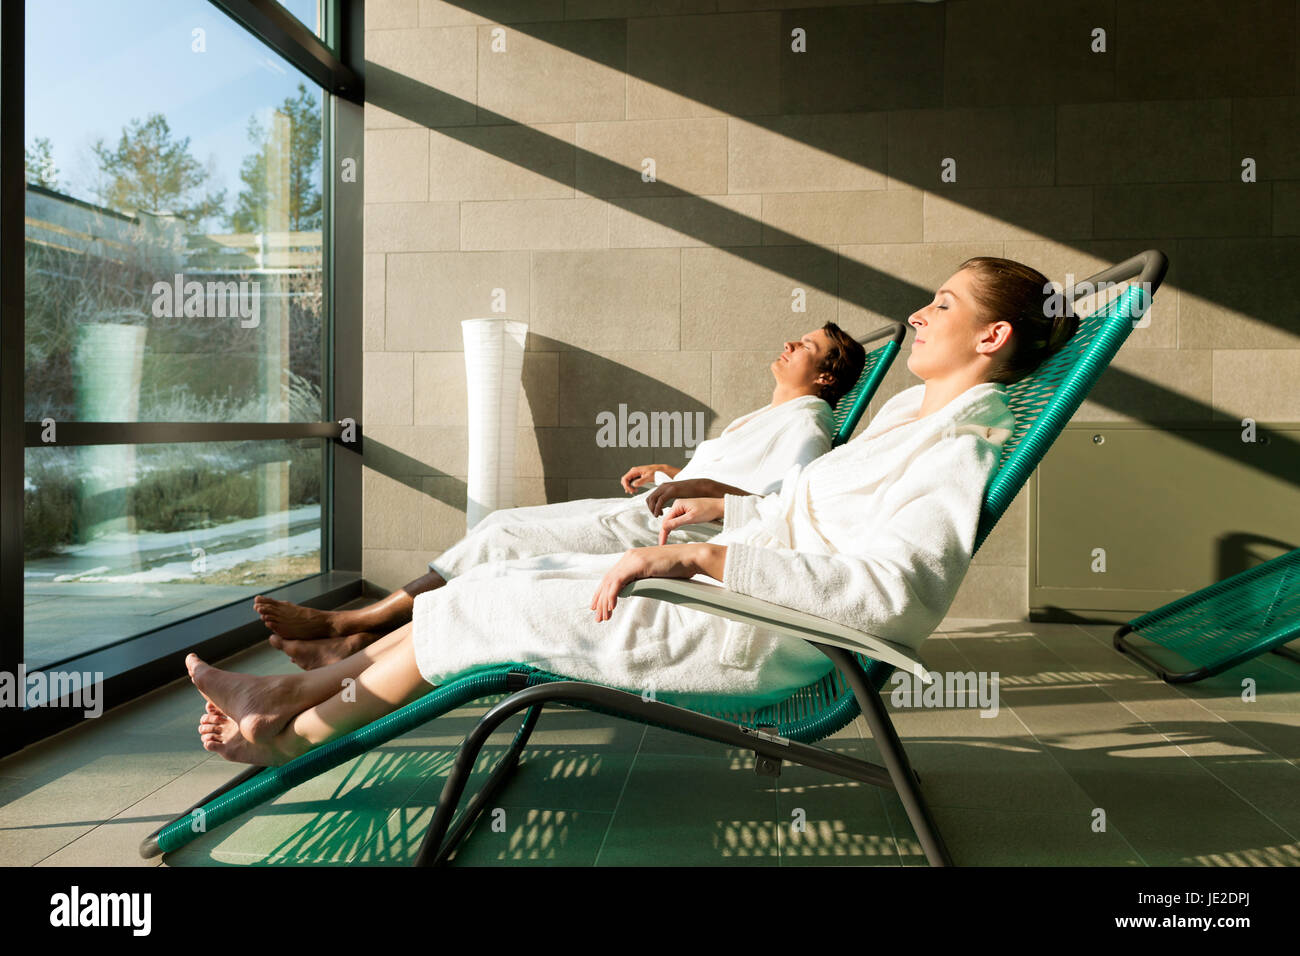 Liege Relax Young Couple Relaxing In Wellness Spa On Liege They Enjoy The Sun